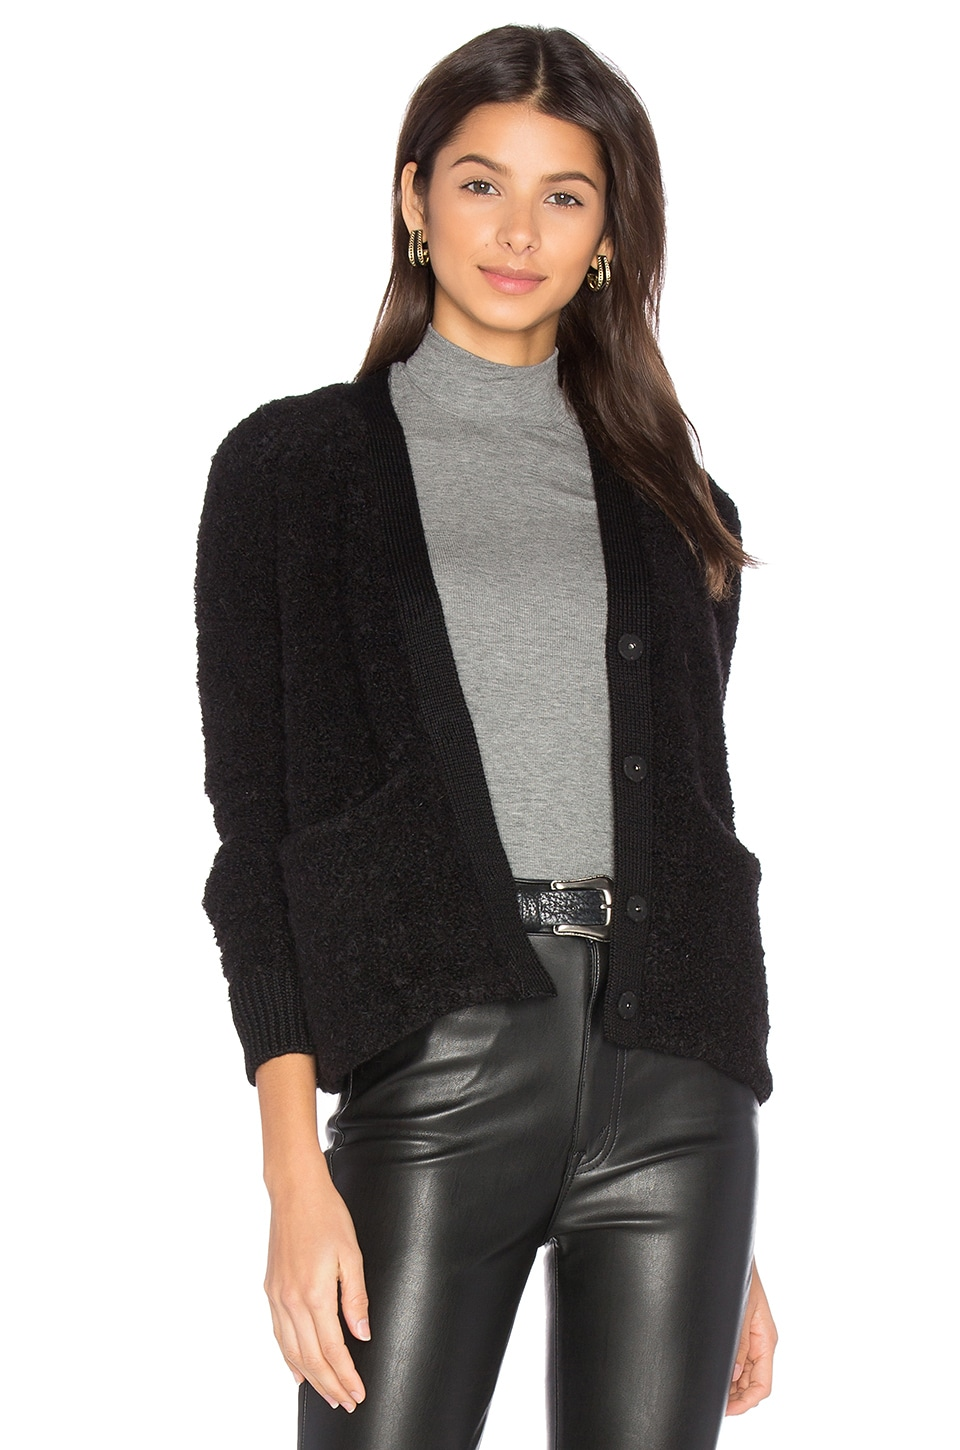 baldwin Effie Crop Cardigan in Black